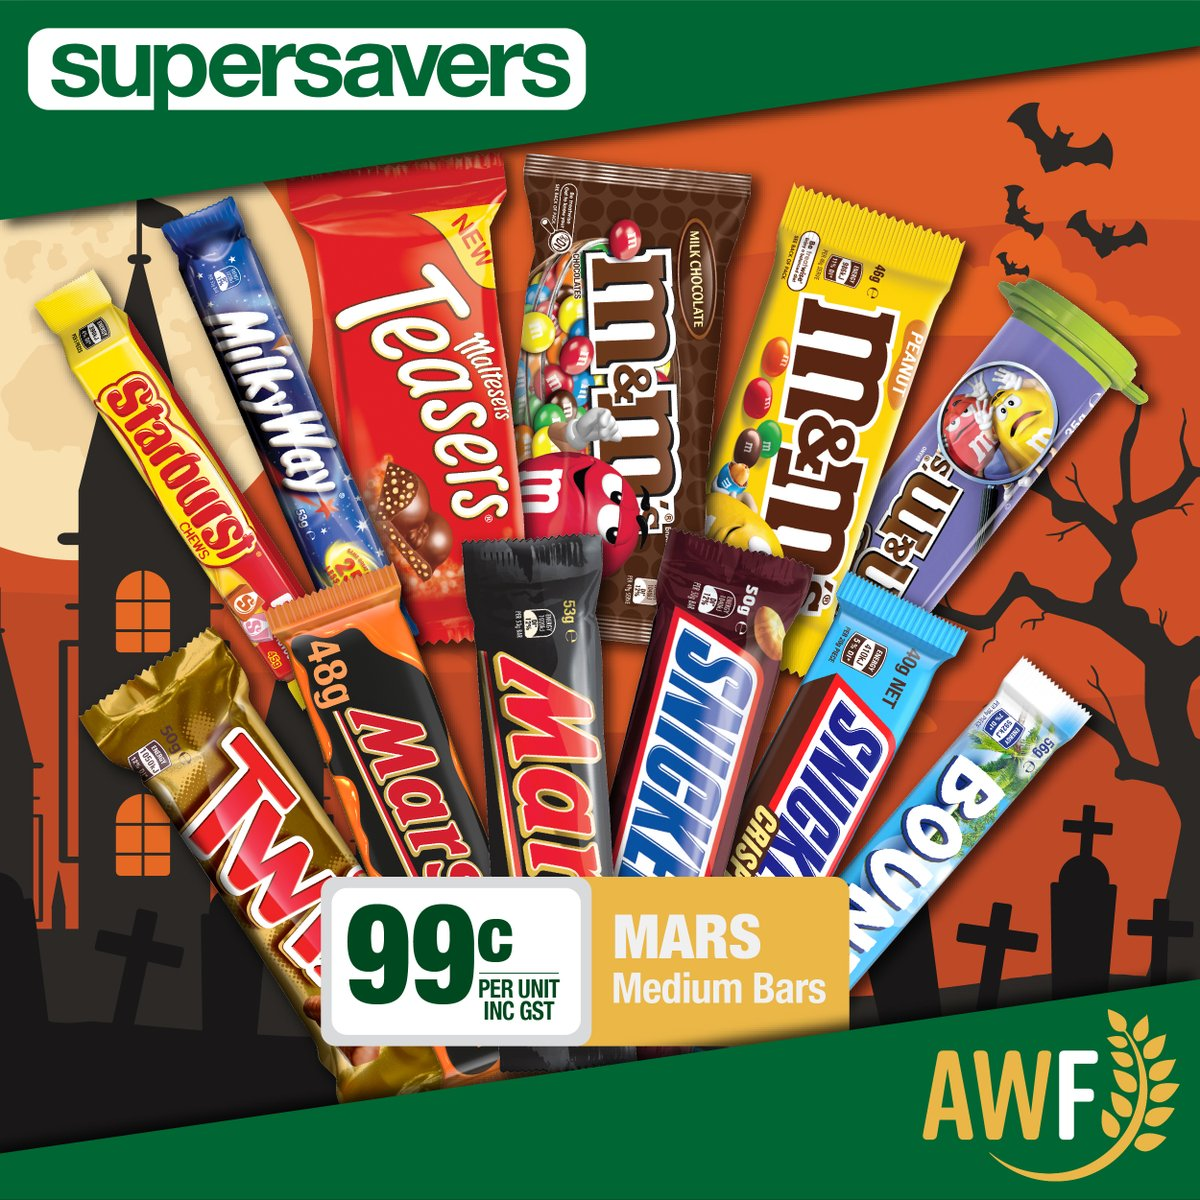 Mars medium bars on special in this months Spooky Savers! Only 89c per unit! View it online: https://t.co/4JQiBKD4hX ------------- 📞 Call us: (08) 9041 1424 📧 Email: sales@allwaysfoods.com.au #supersavers #AWF #AllwaysFoods #marsbars #snickers #twix #mandms #merredin https://t.co/ZETZyijz3p